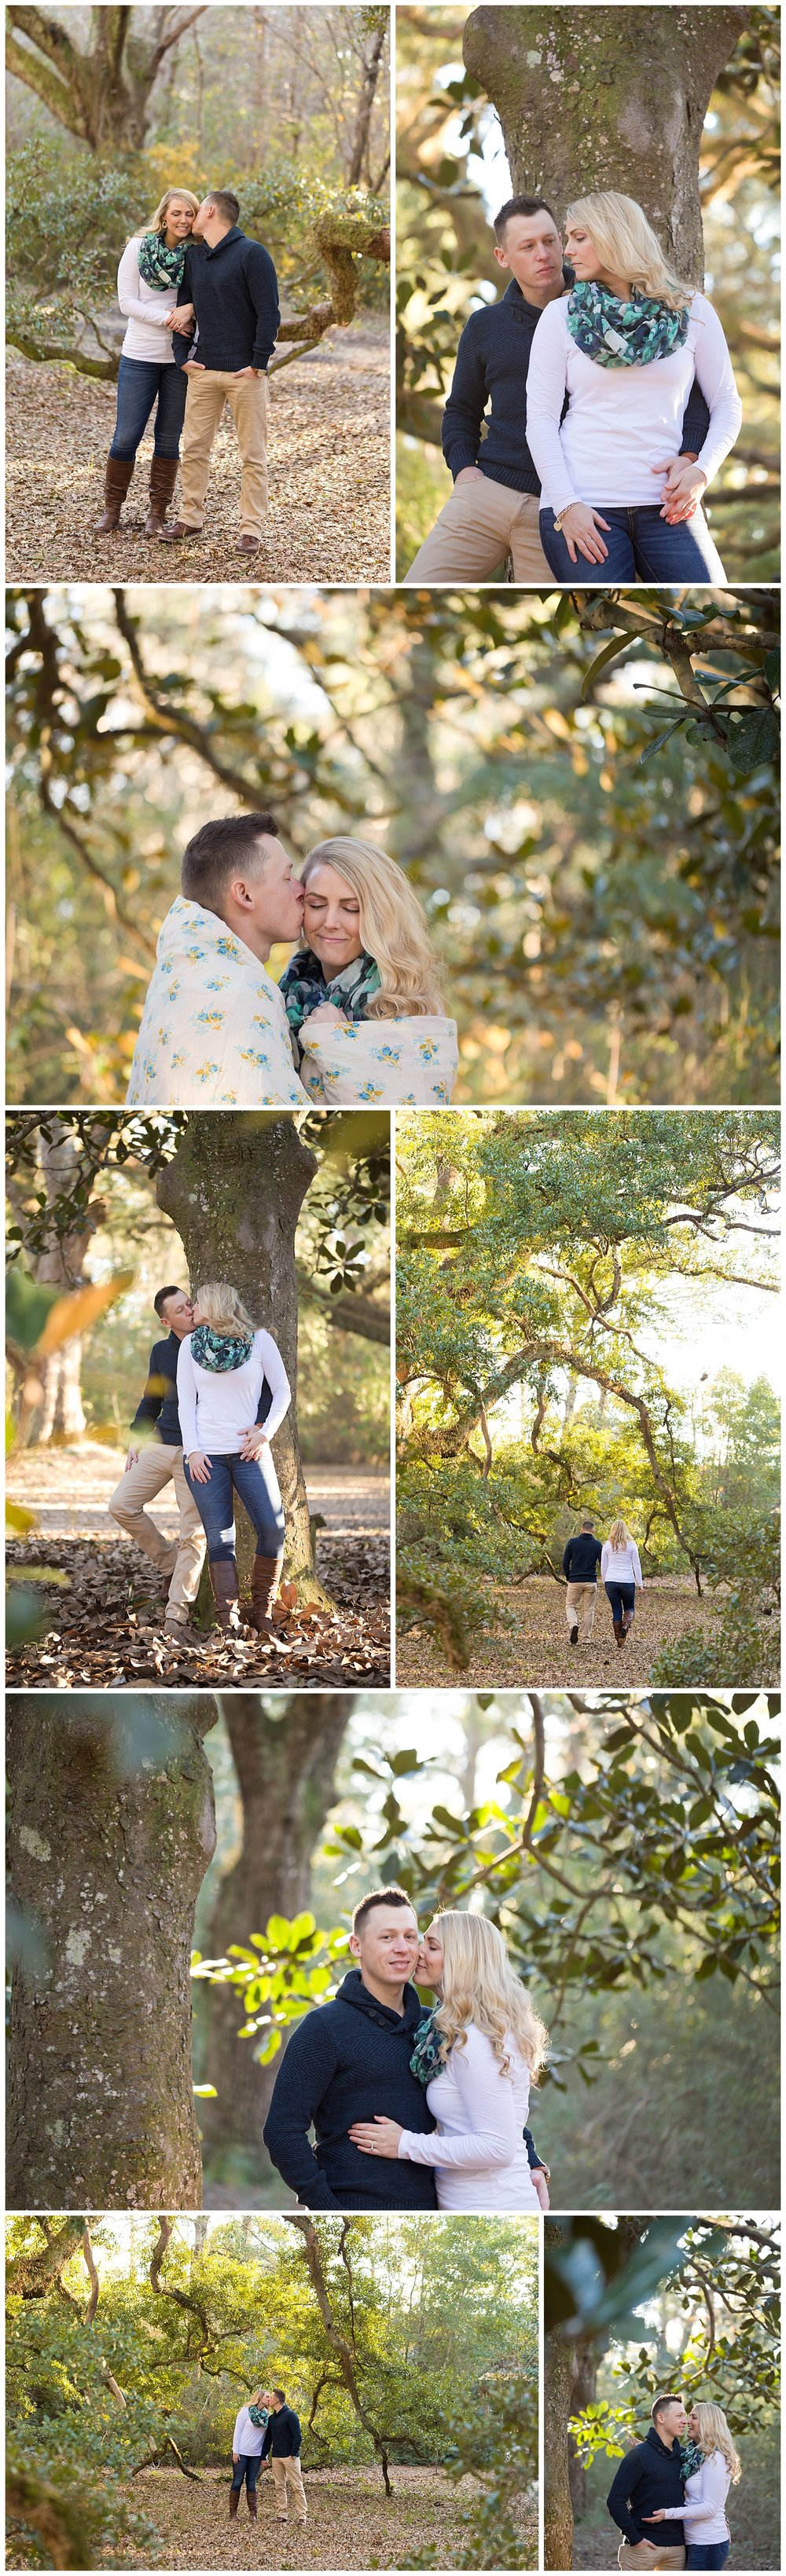 romantic engagement photos in the woods (Ocean Springs, Mississippi - Uninvented Colors Photography)